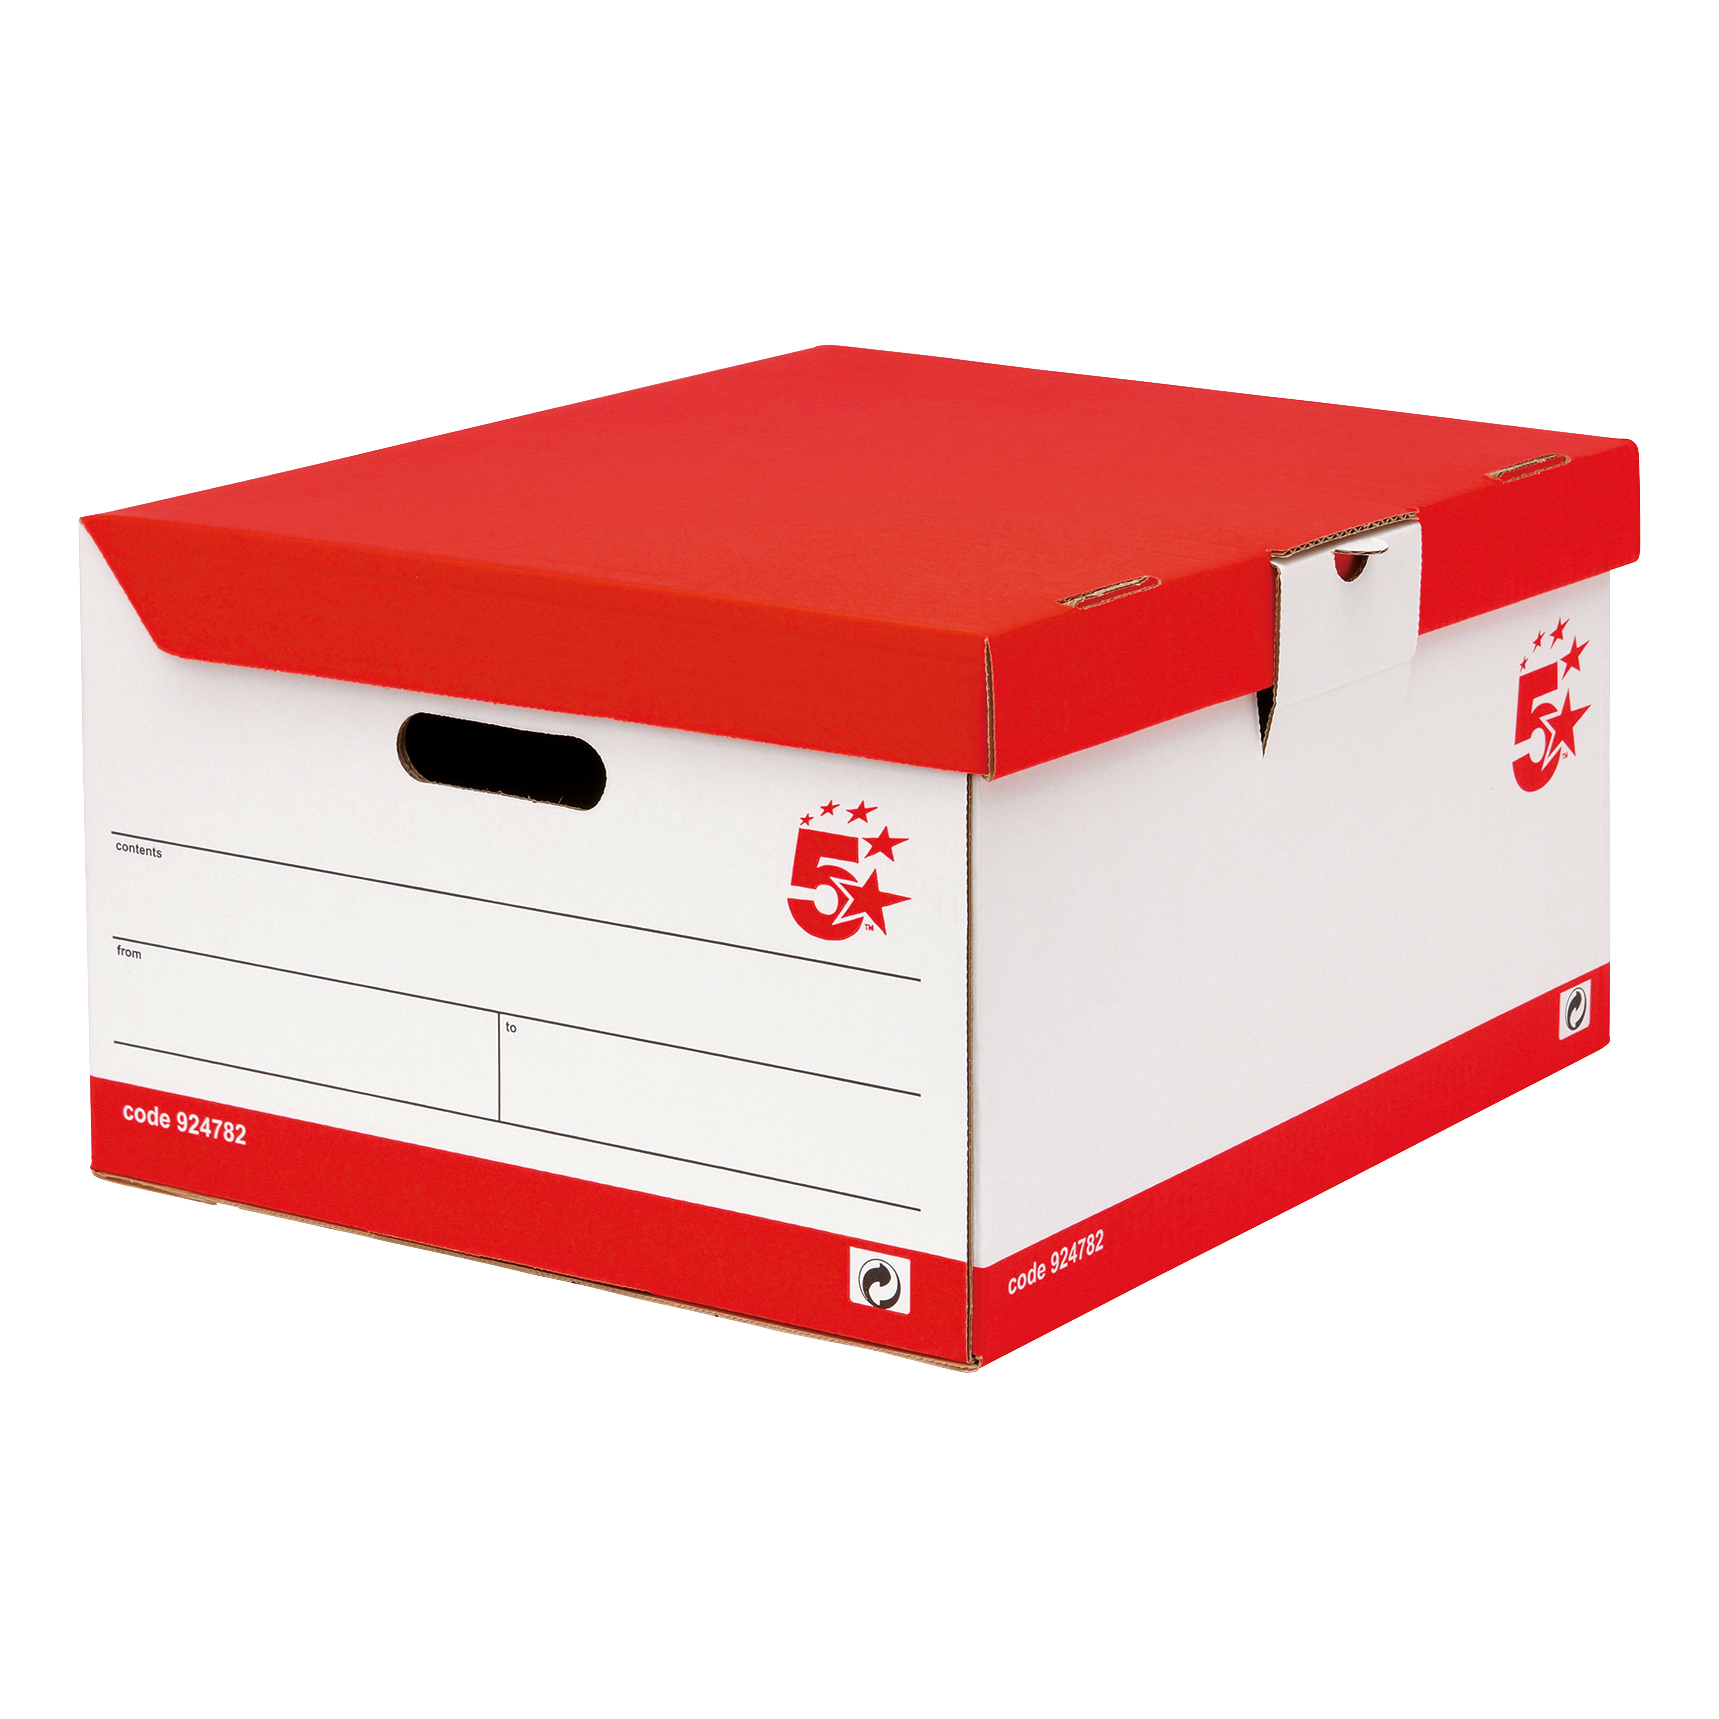 Storage Boxes 5 Star Office FSC Storage Trunk Hinged Lid Self-assembly W387xD448xH254mm Red & White Pack 10